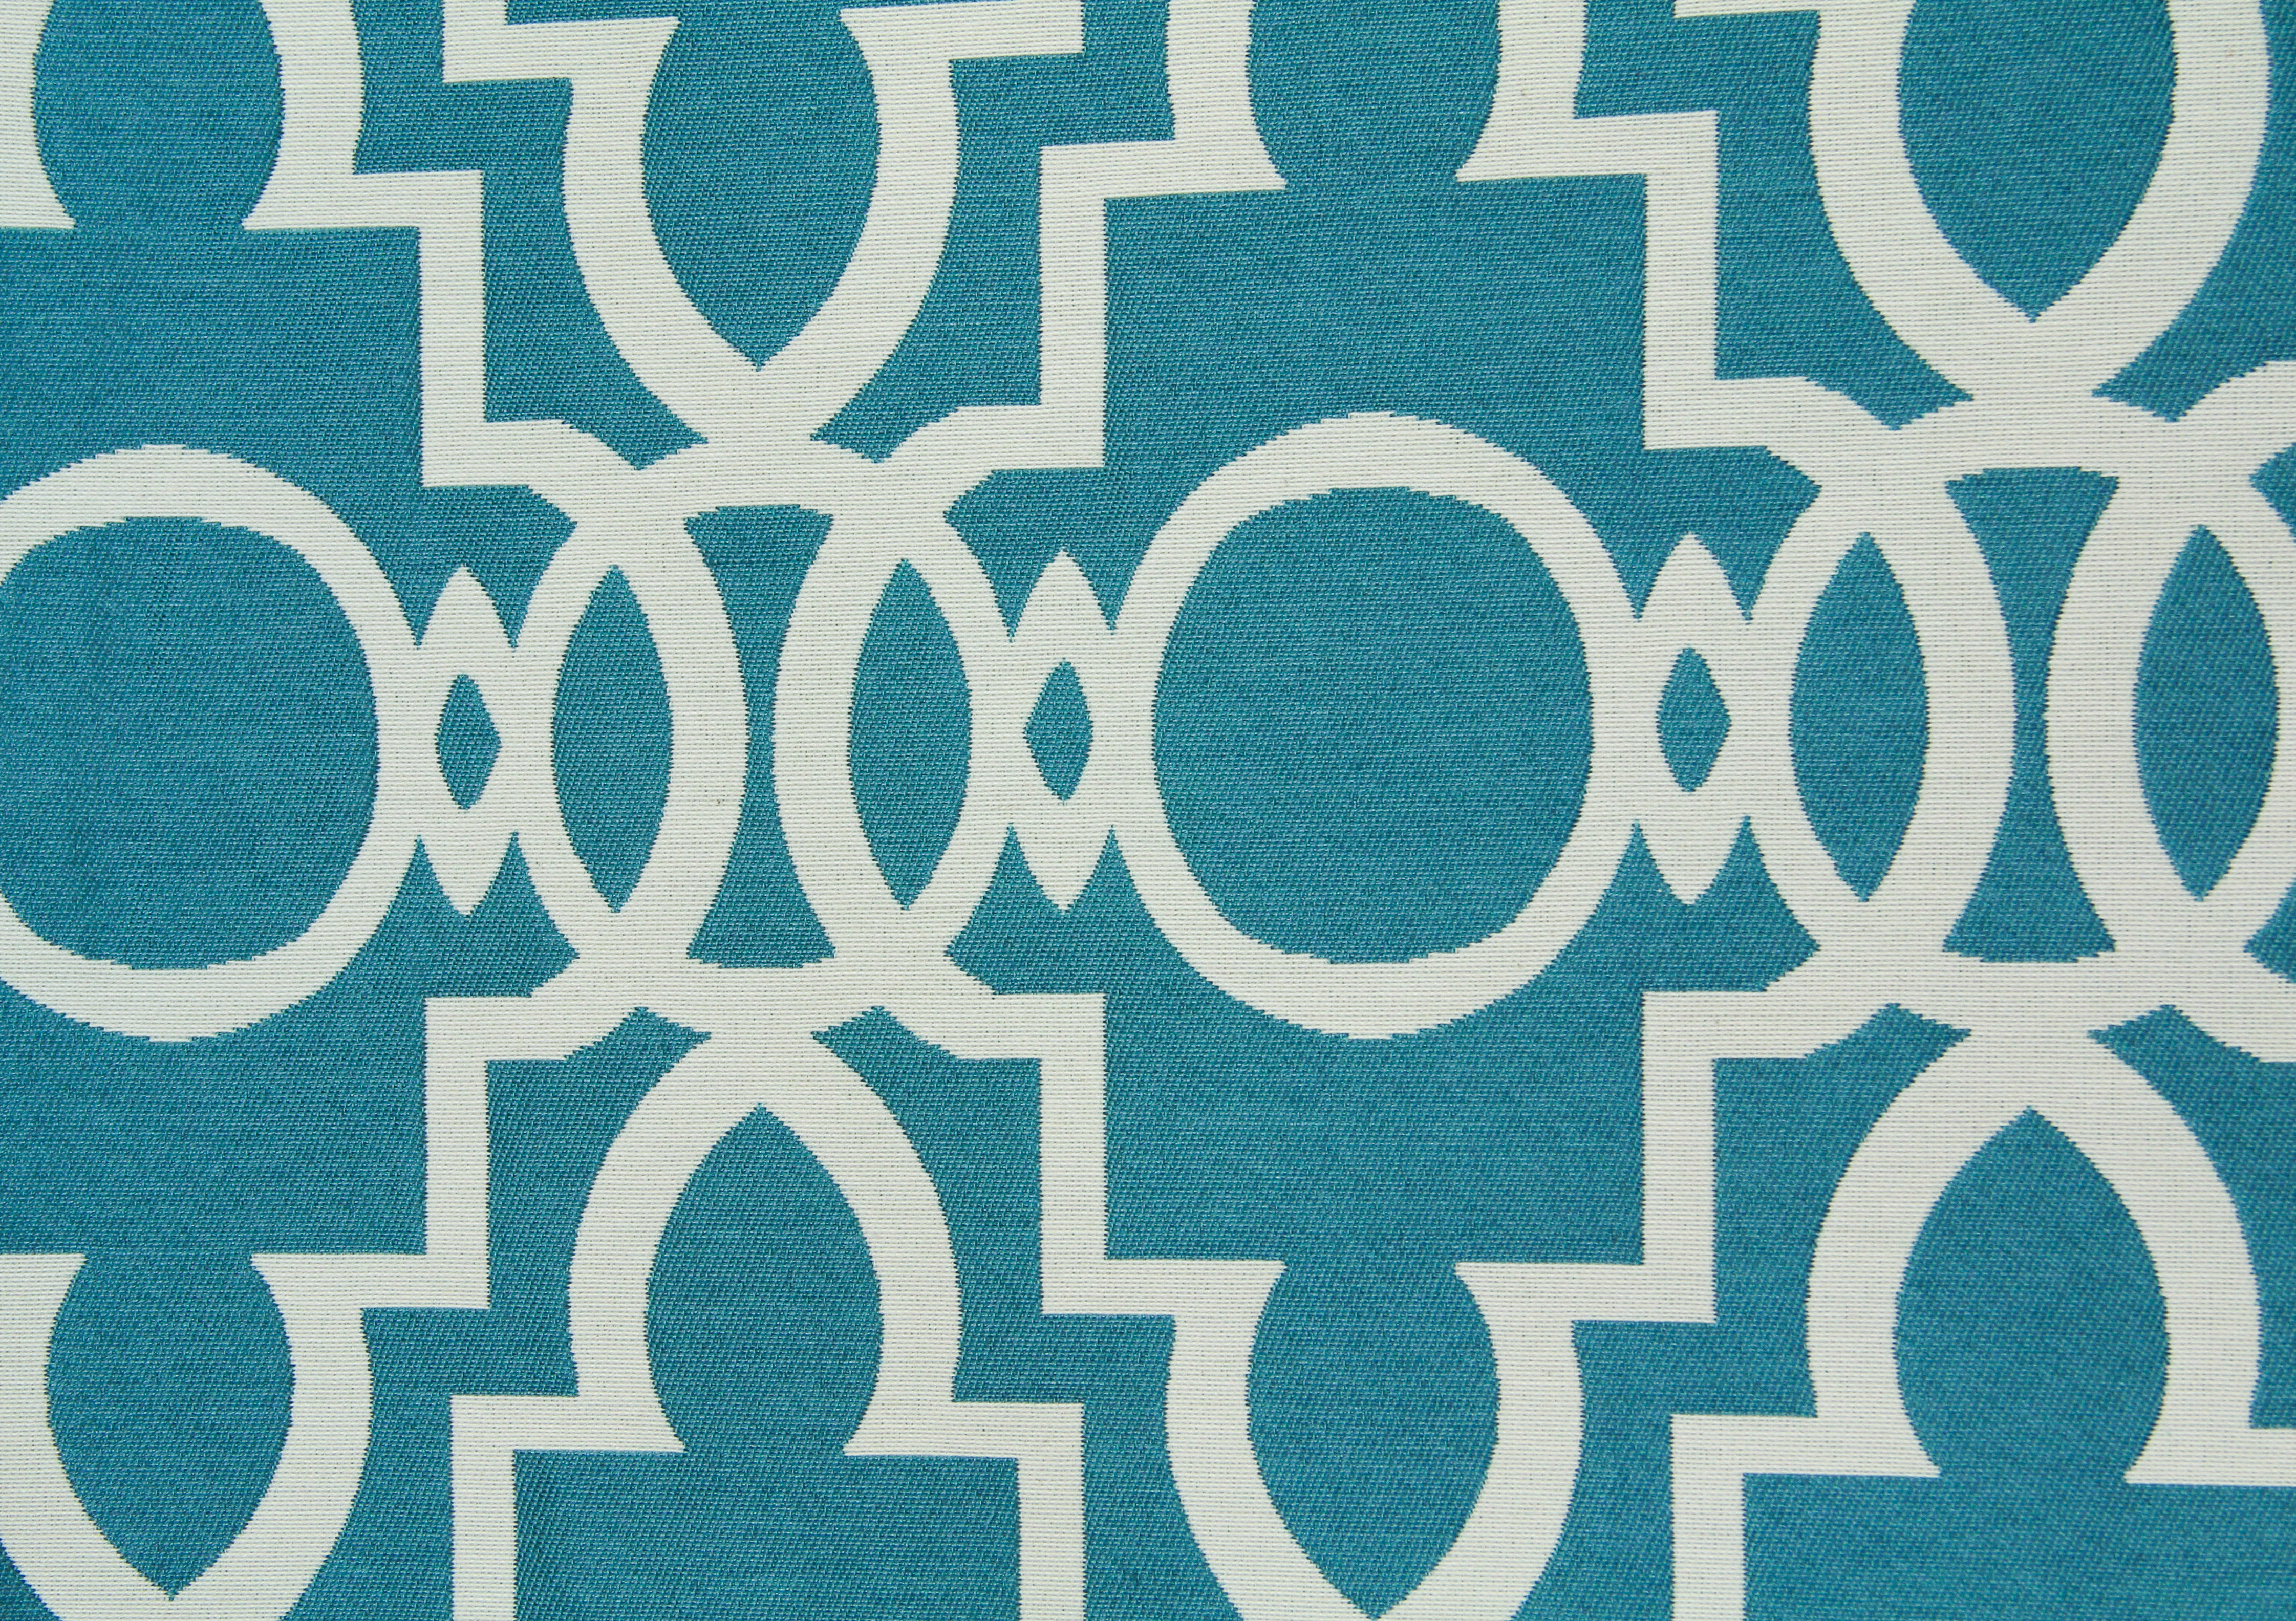 Fabric Texture Blue Pattern Cloth Design Deslktop Wallpaper